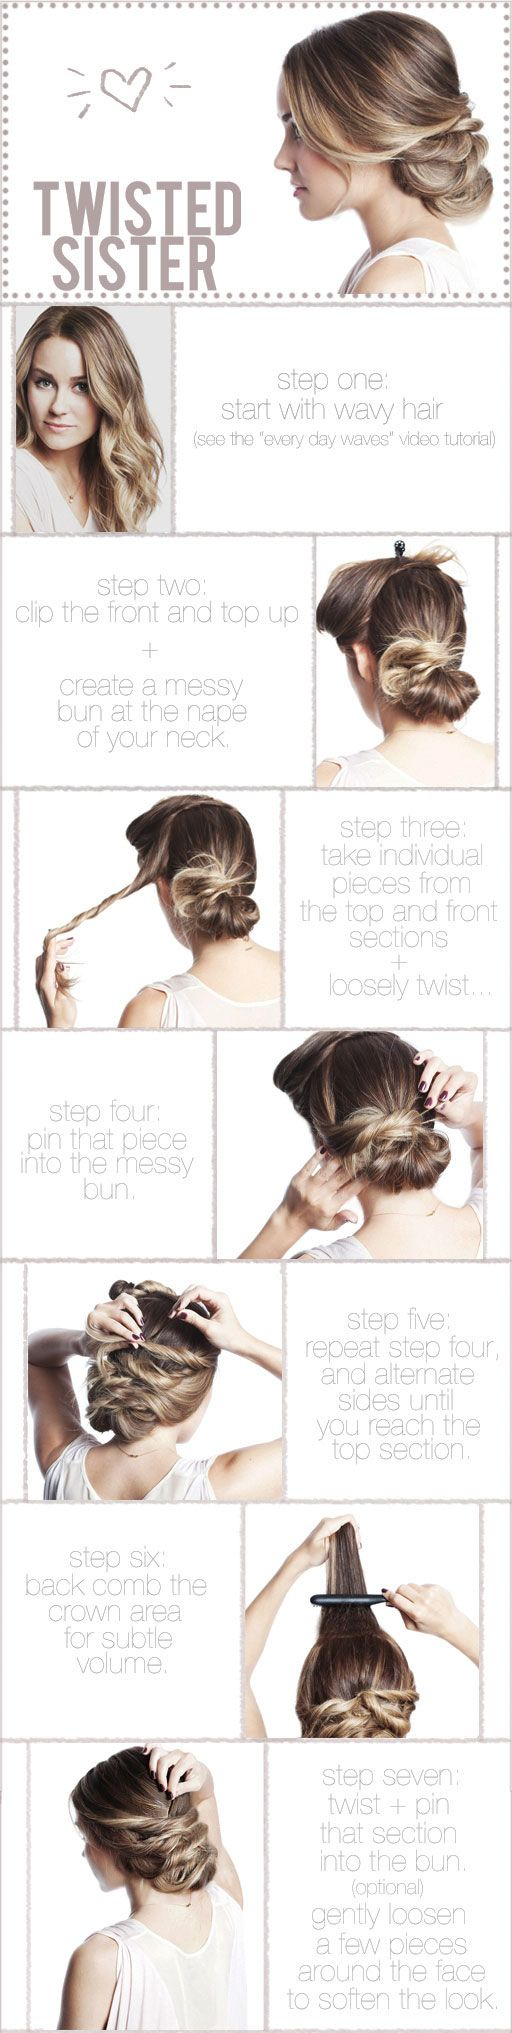 :)Hair Ideas, Wedding Hair, Hair Tutorials, Long Hair, Messy Buns, Twists Sisters, Hair Style, Lauren Conrad, Updo